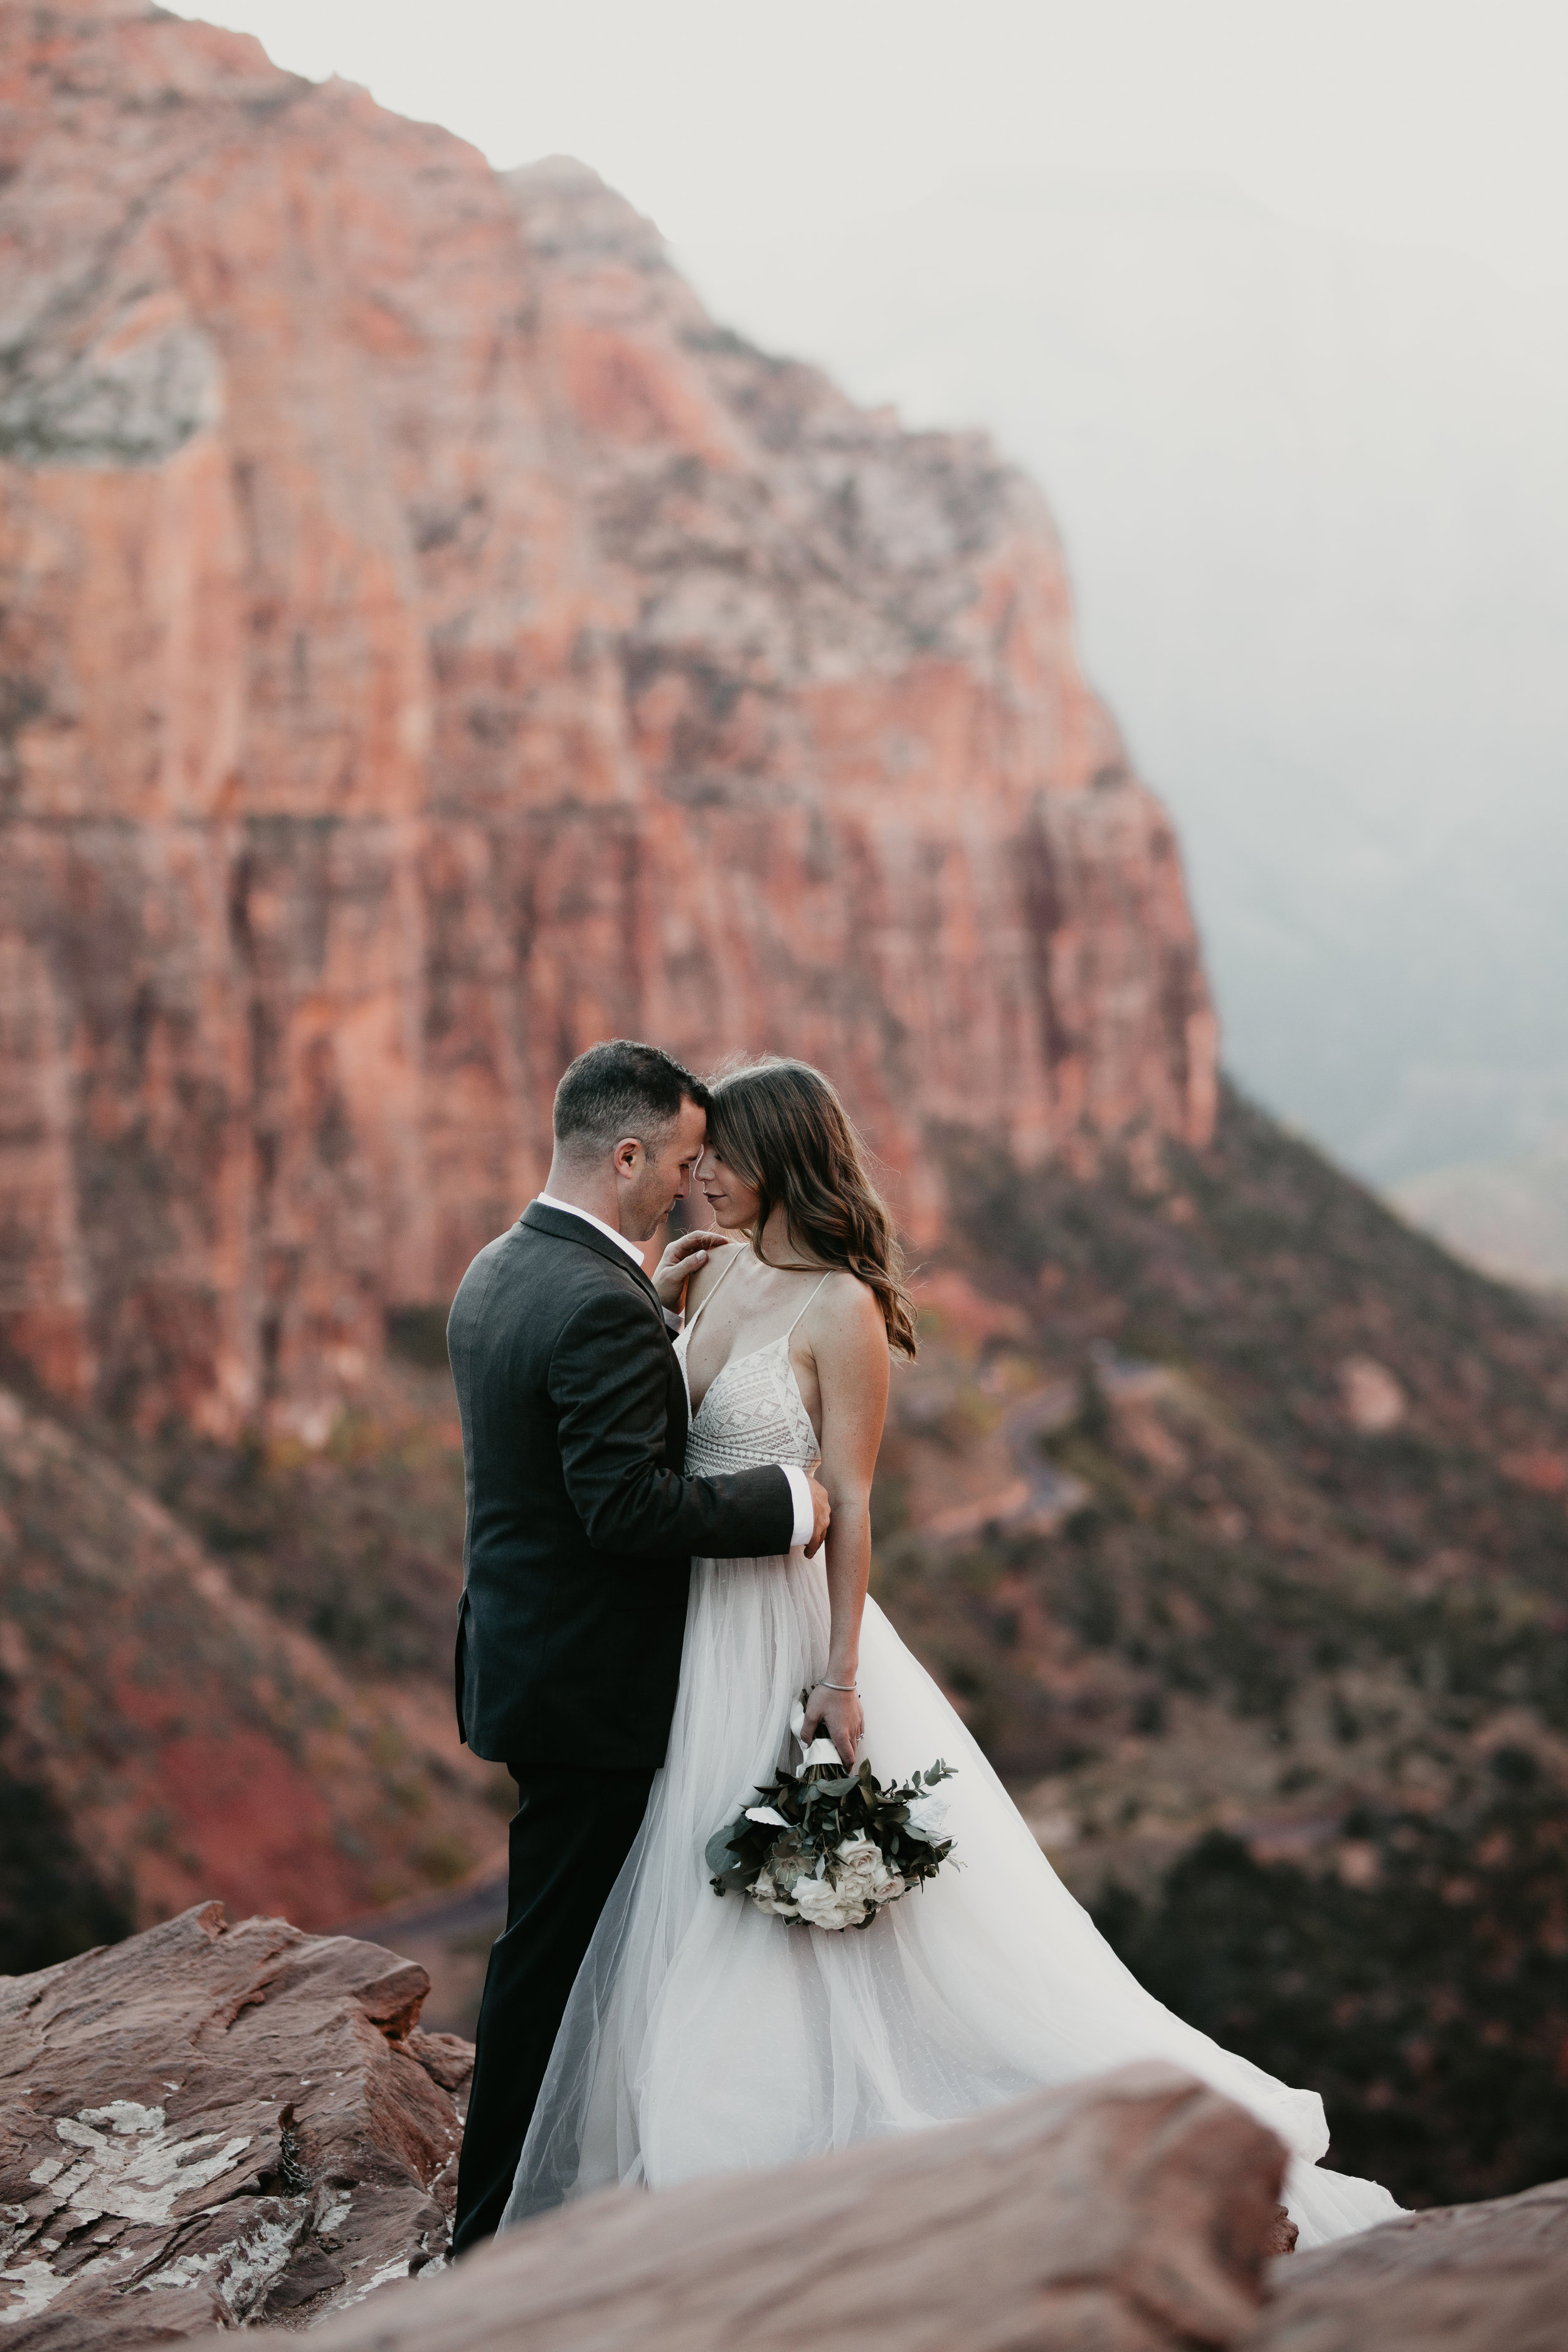 nicole-daacke-photography-zion-national-park-elopement-photographer-canyon-overlook-trail-elope-hiking-adventure-wedding-photos-fall-utah-red-rock-canyon-stgeorge-eloping-photographer-44.jpg